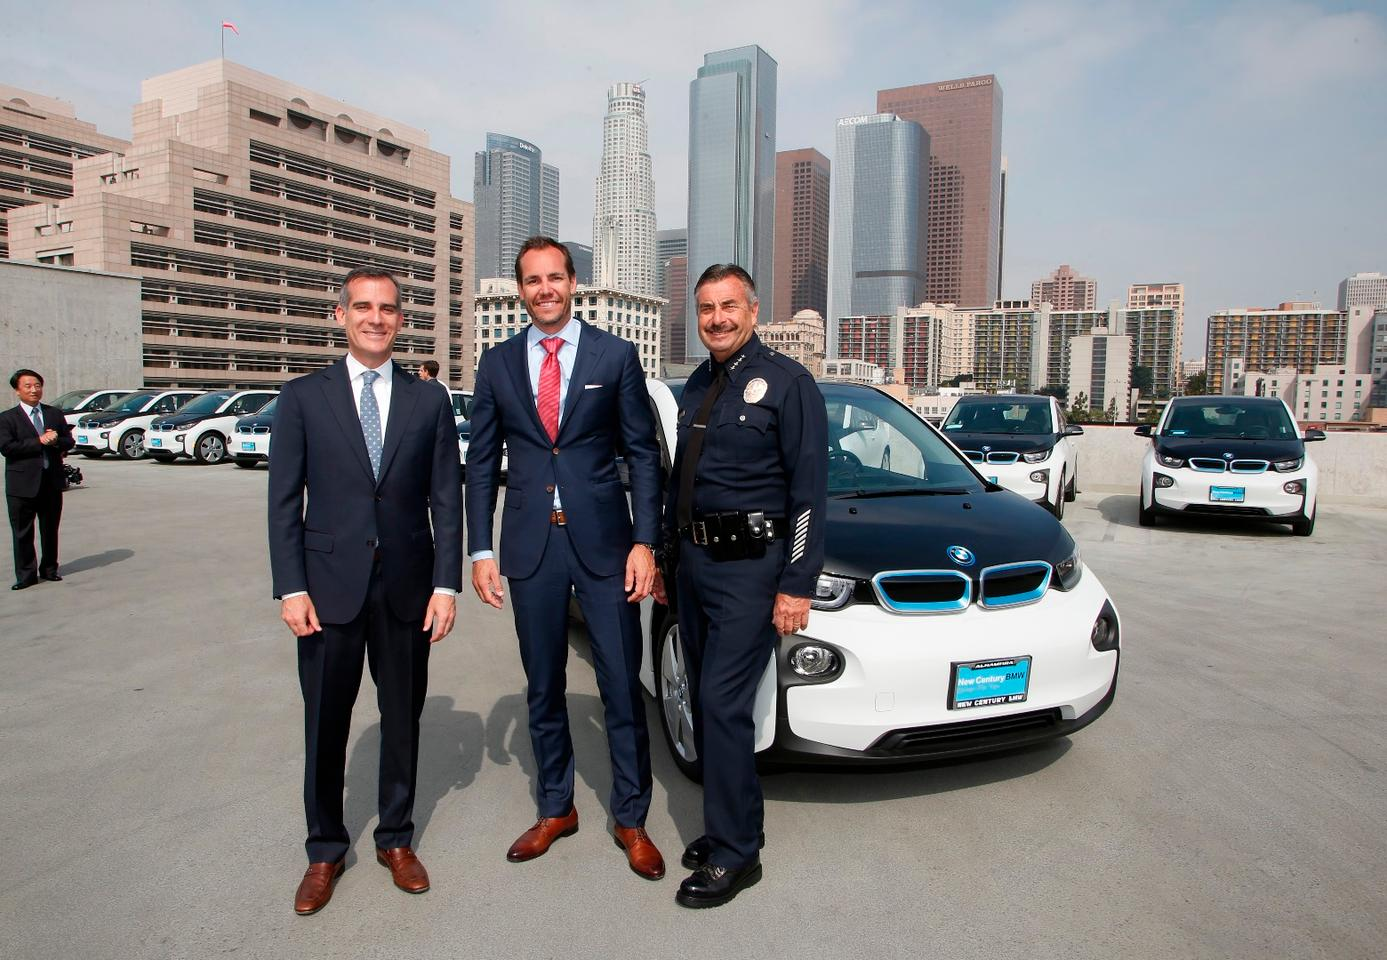 The i3 was chosen after bidding process